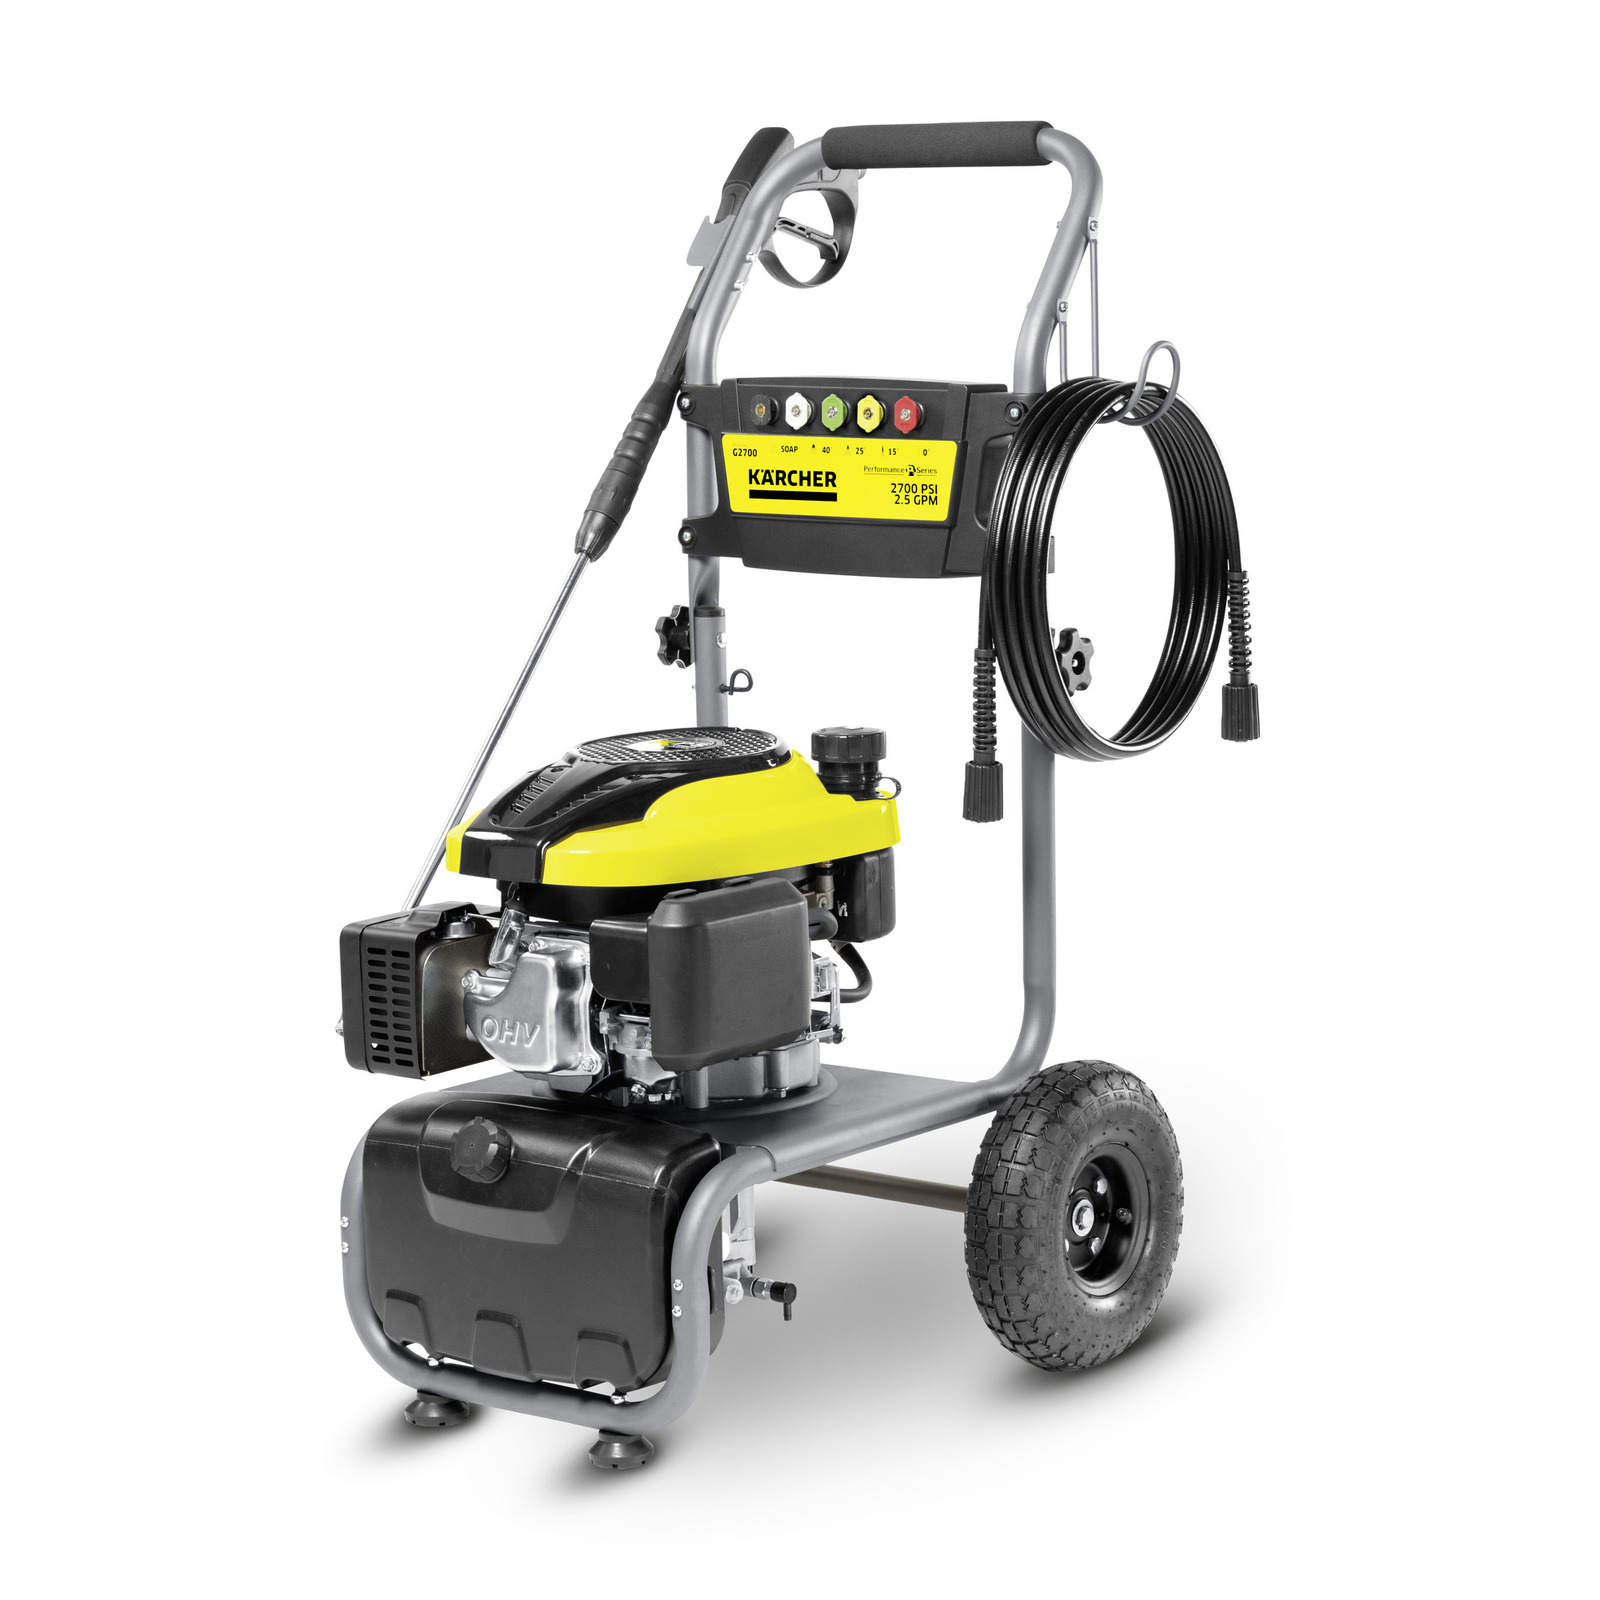 G 2700 11072660 https://www.kaercher.com/us/home-garden/gas-pressure-washers/g-2700-11072660.html  Karcher's G 2700 pressure washer delivers the right amount ...